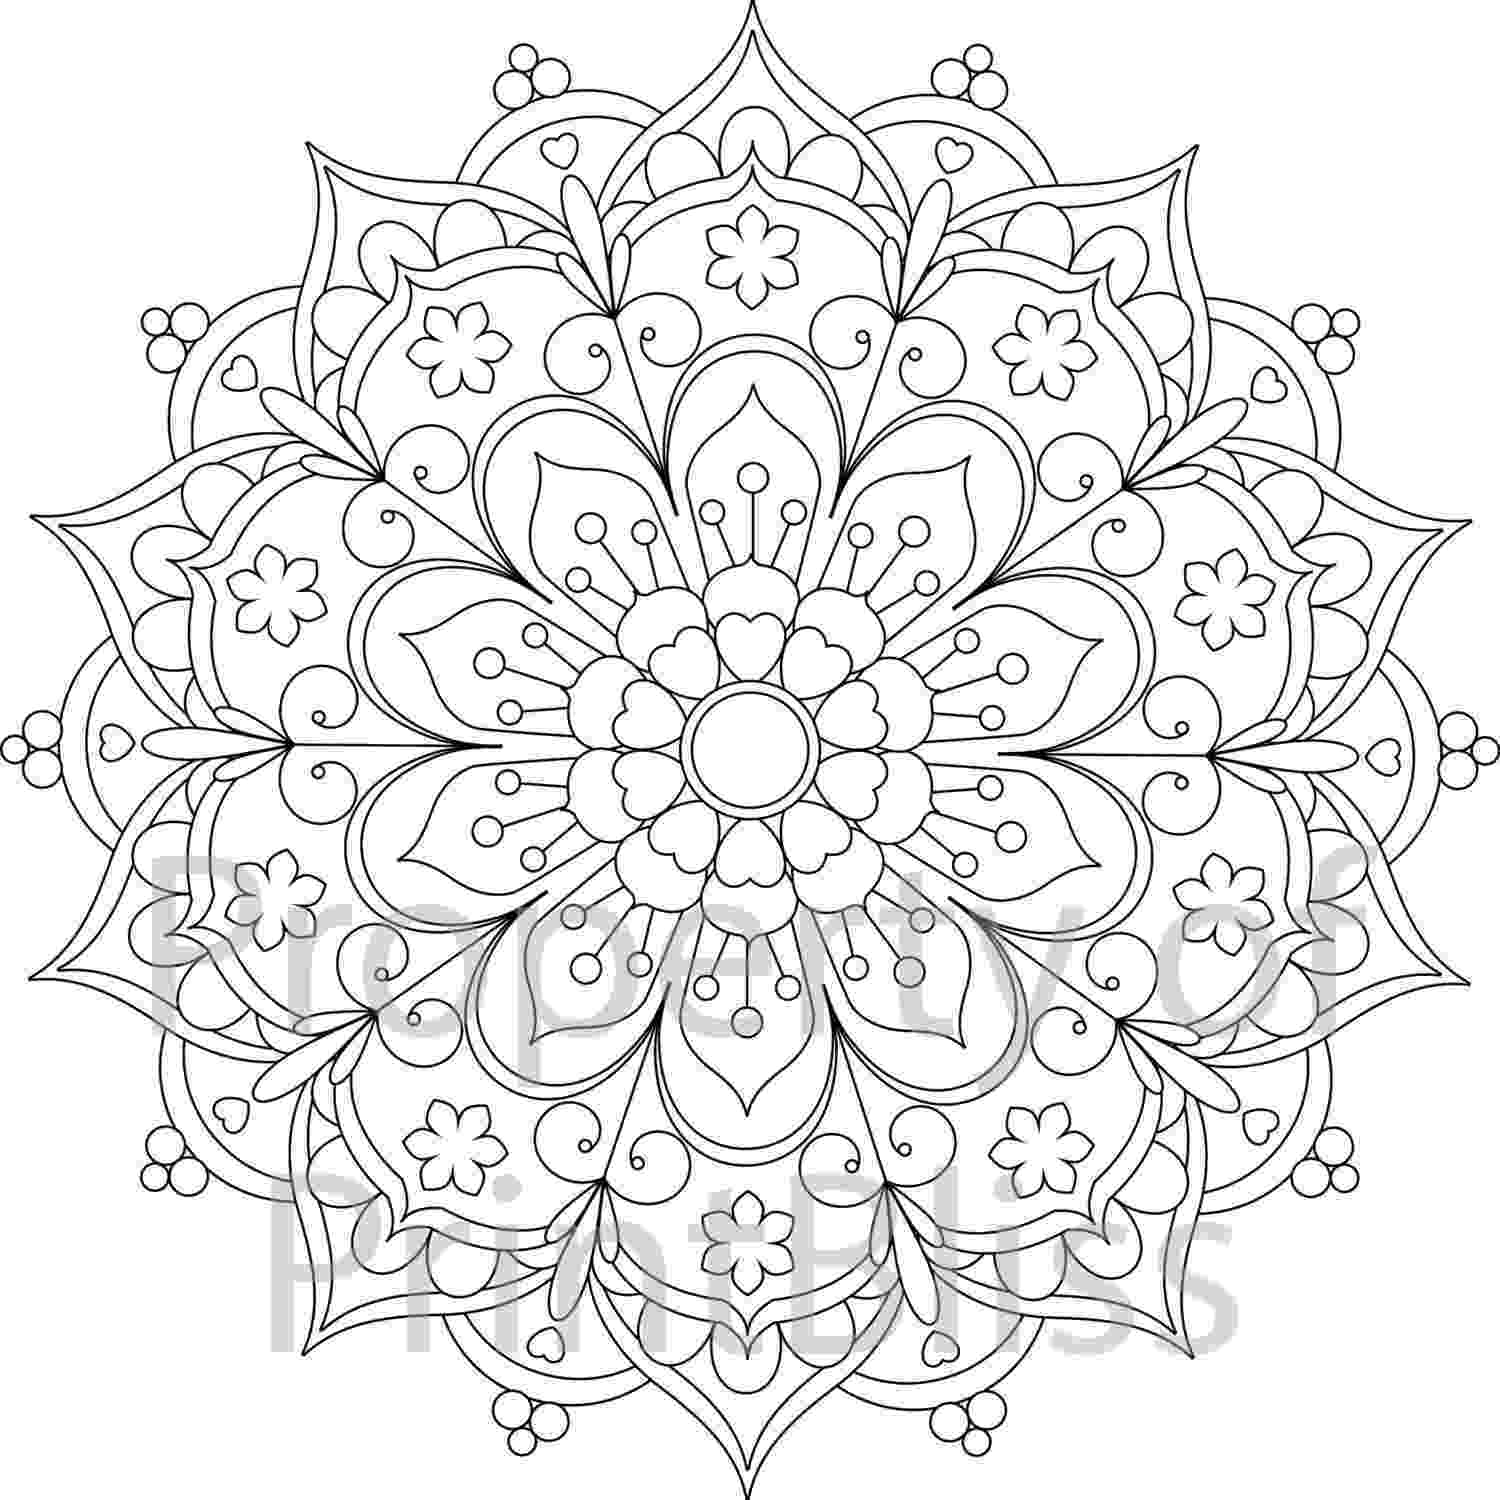 flower coloring patterns zentangle daisy there are actually 3 flower designs in patterns flower coloring